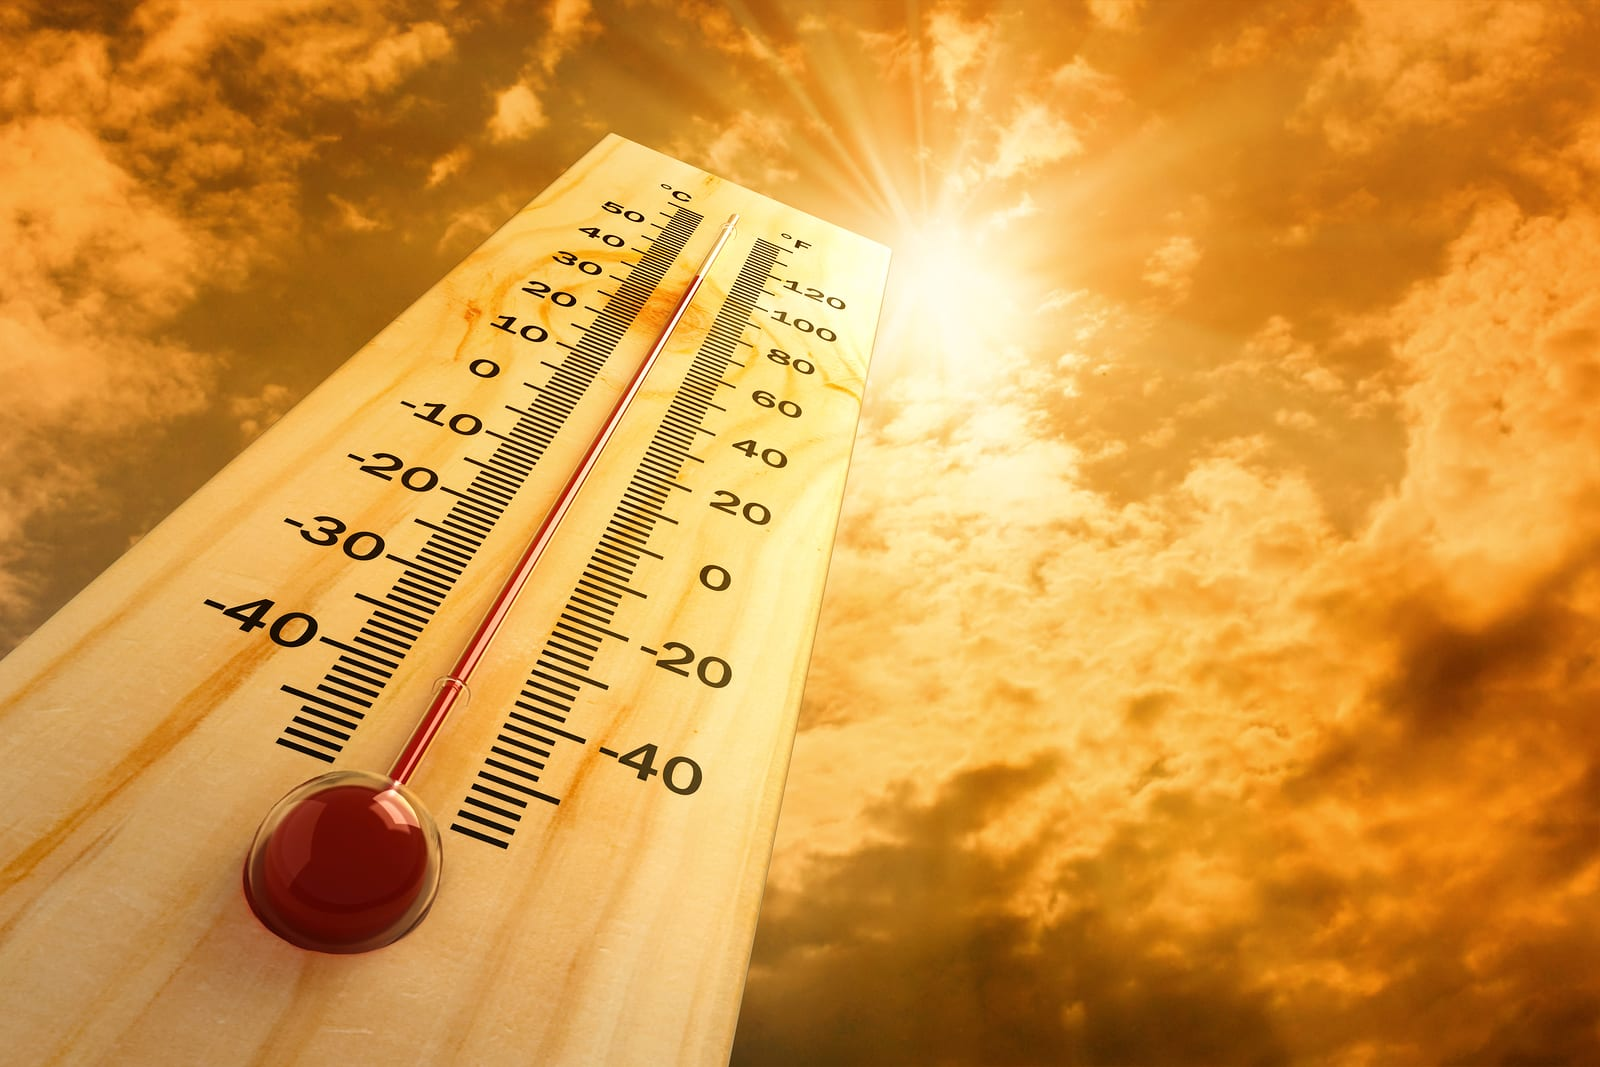 Alabama Department of Public Health News: Follow precautions to prevent heat-related illnesses